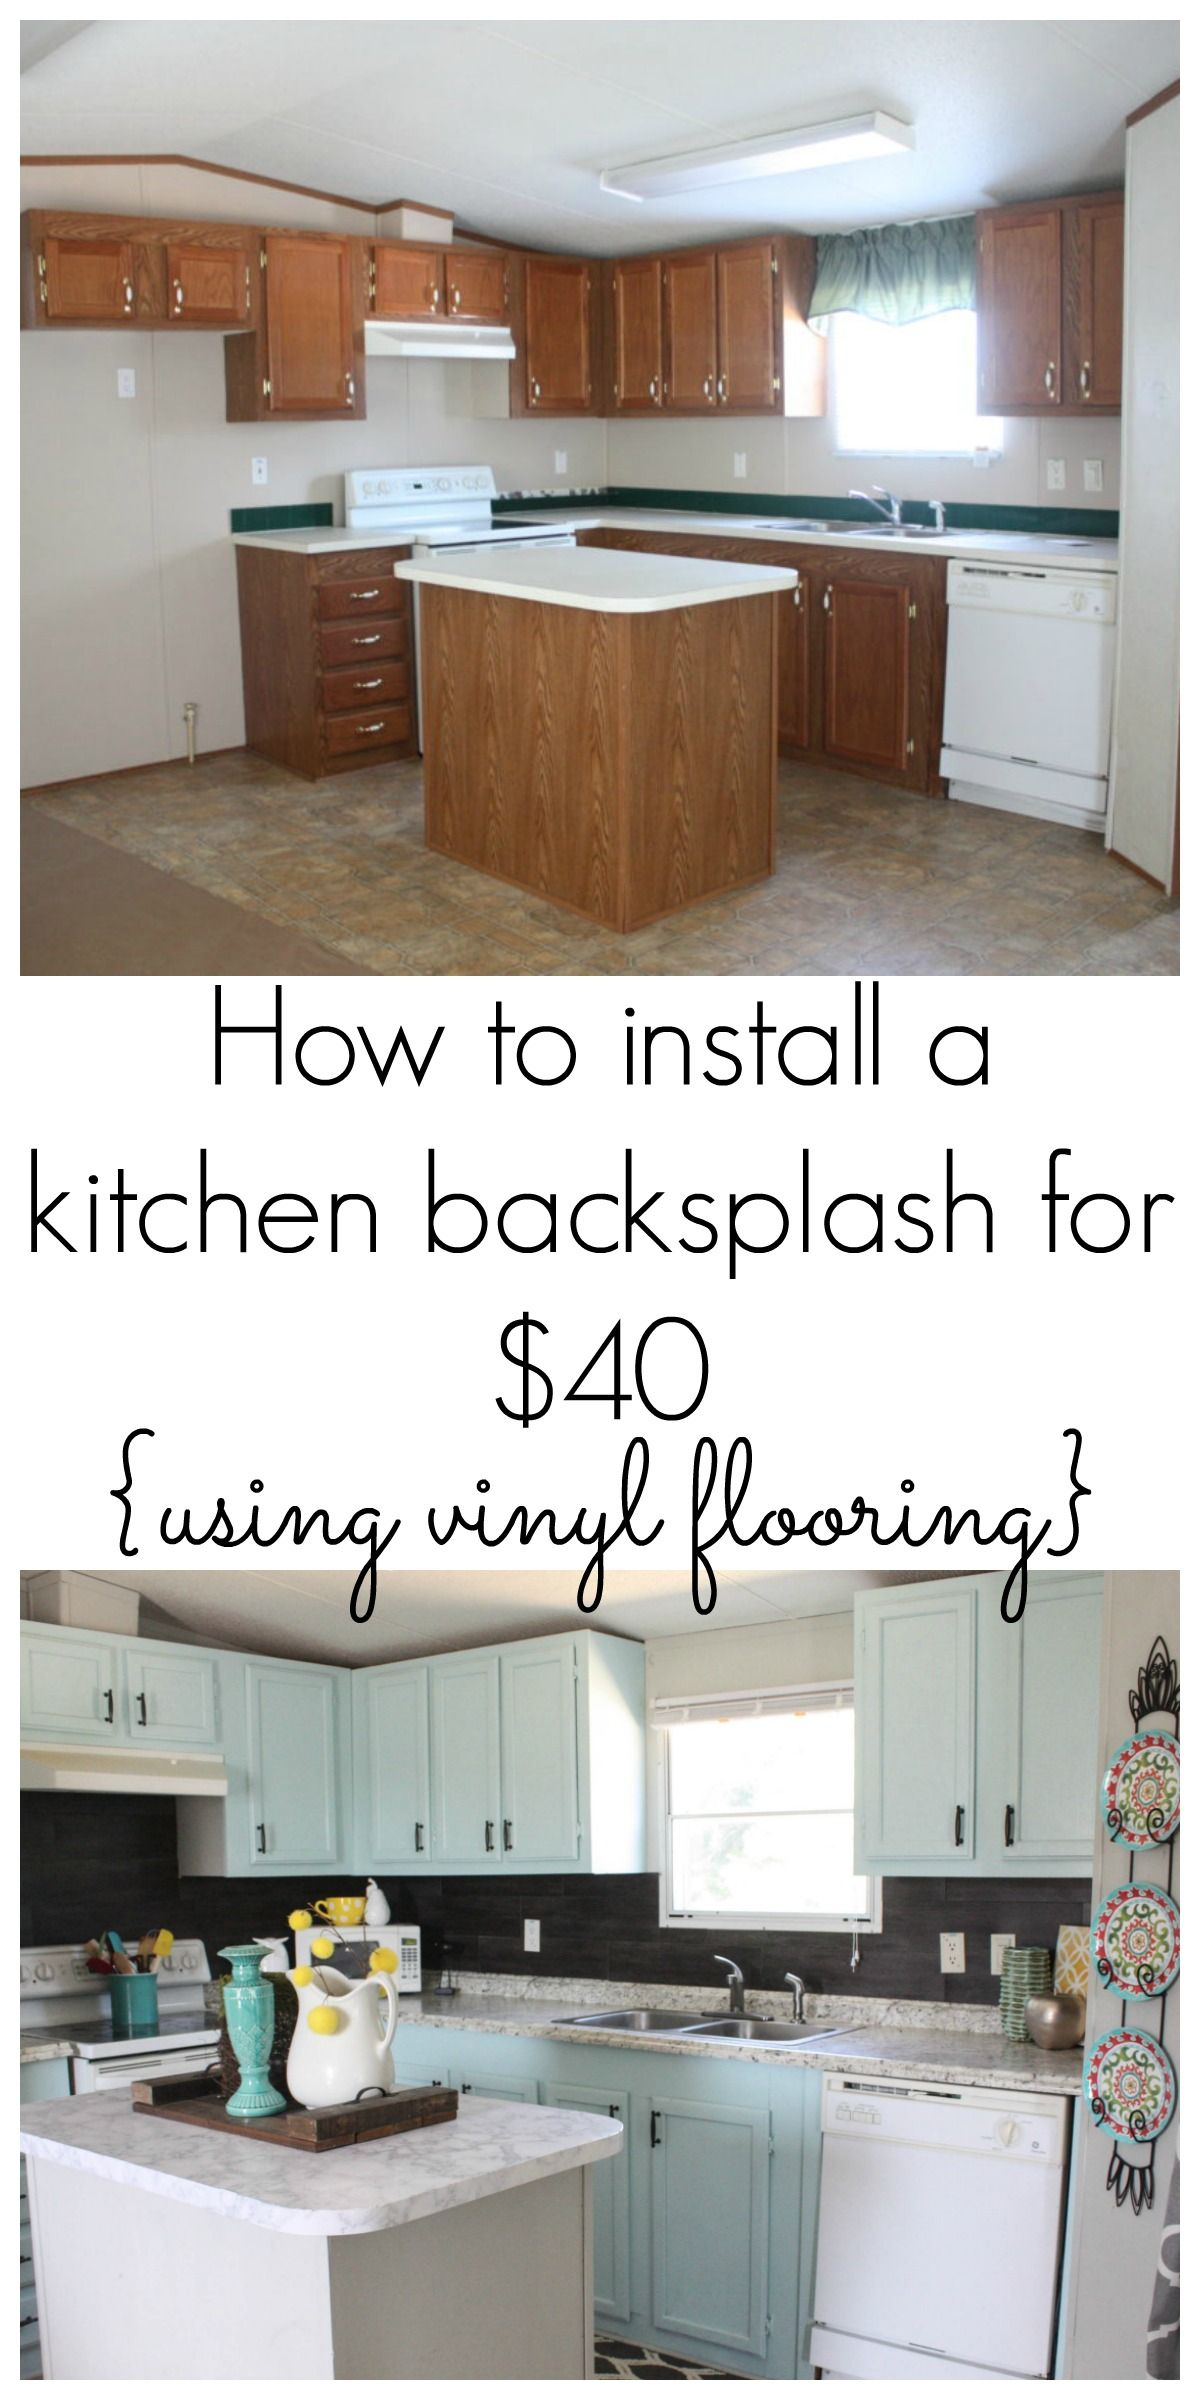 cheap kitchen backsplash ideas. Our $40 Backsplash {Using Vinyl Flooring} - Re-Fabbed. Cheap Flooring Ideas Kitchen